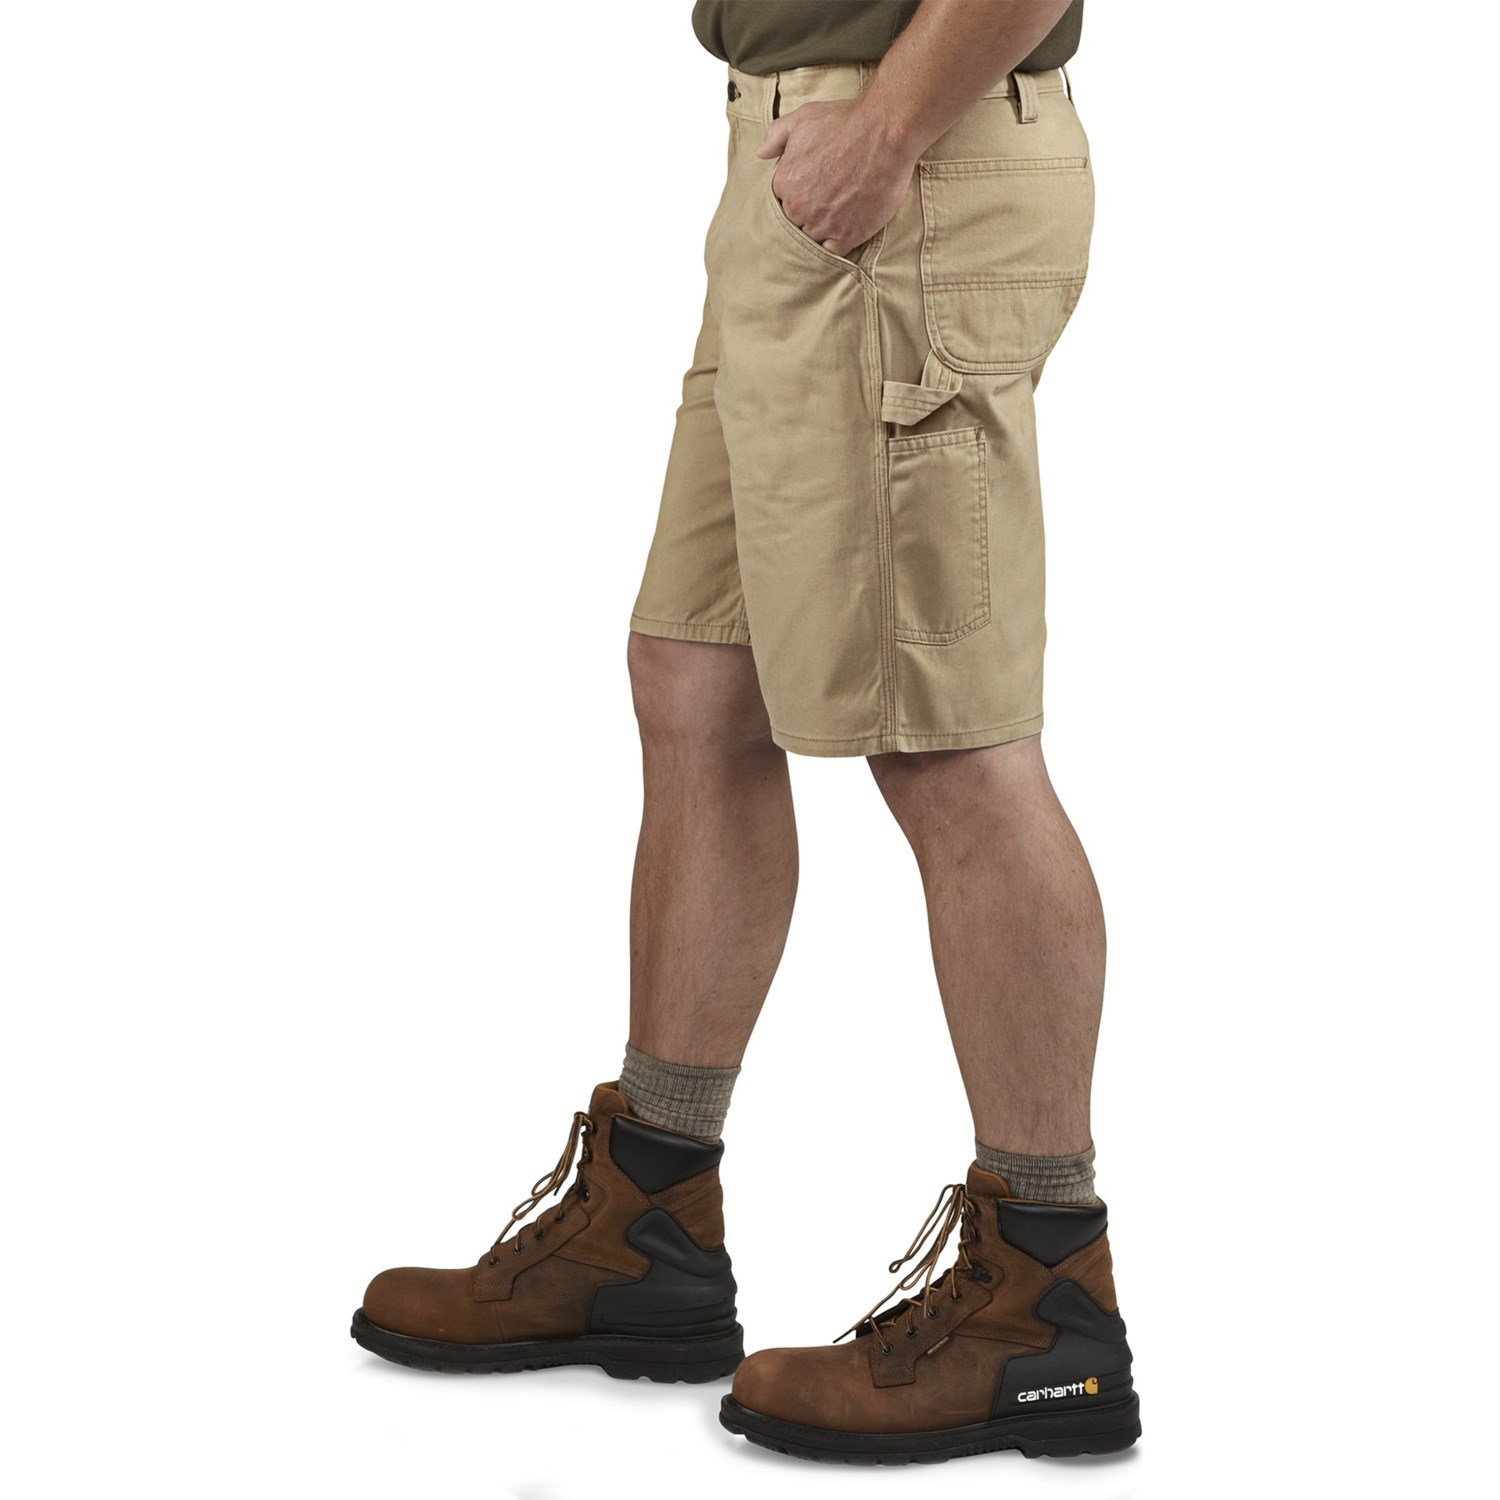 Carhartt Washed Twill Dungaree Shorts Factory Seconds For Men